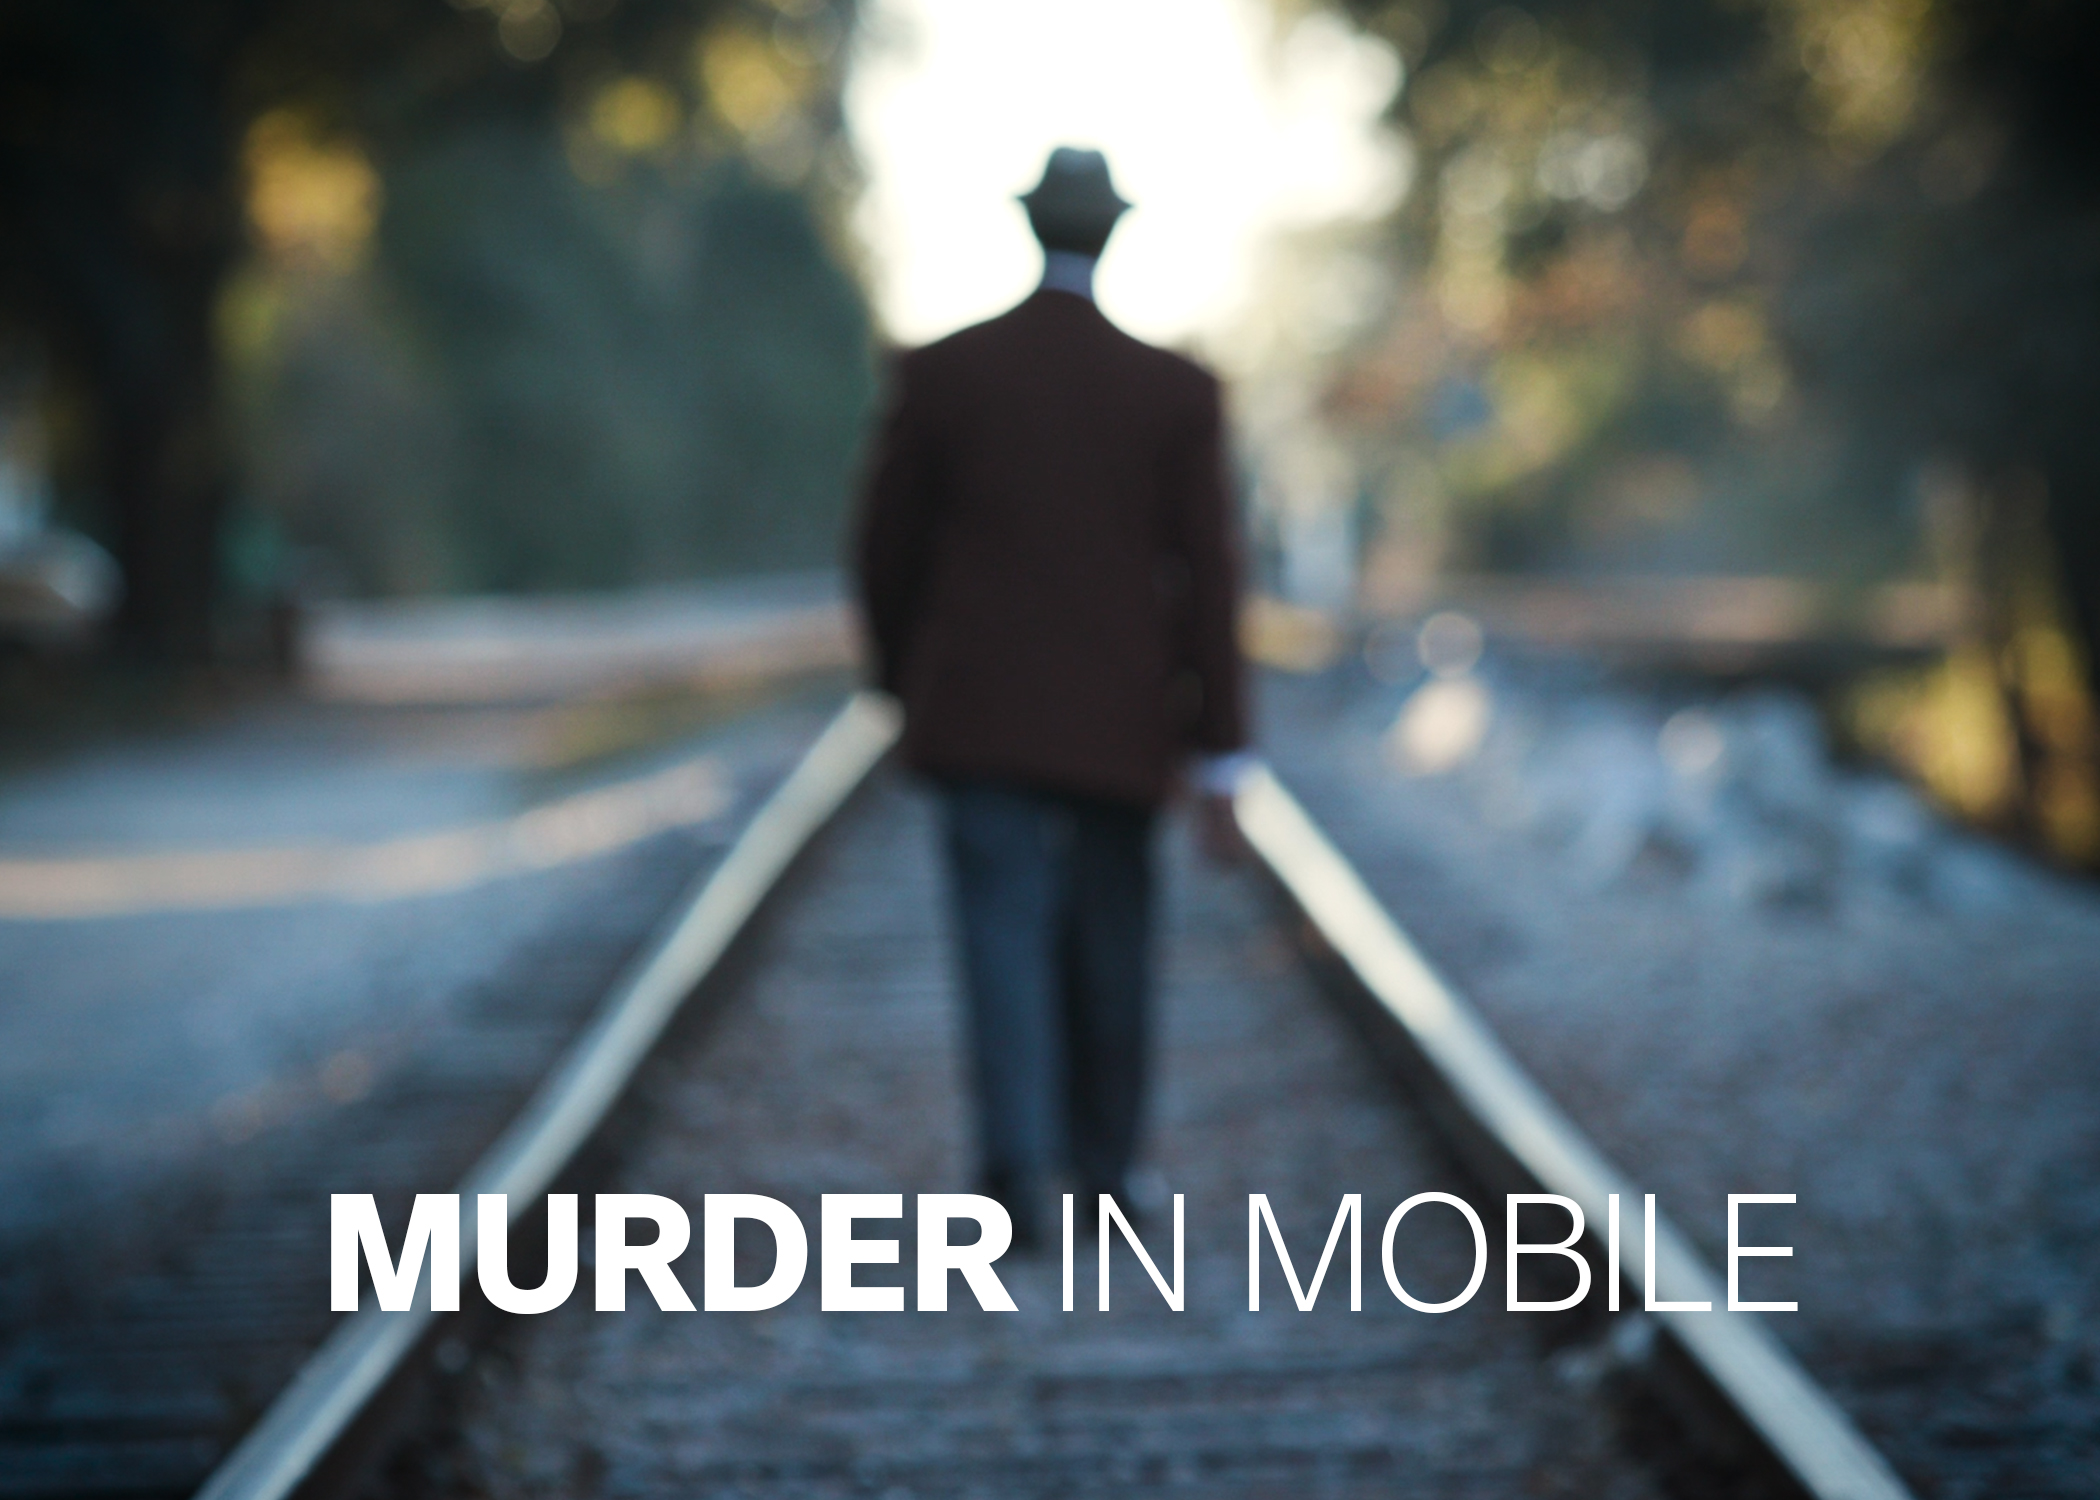 Murder in Mobile poster